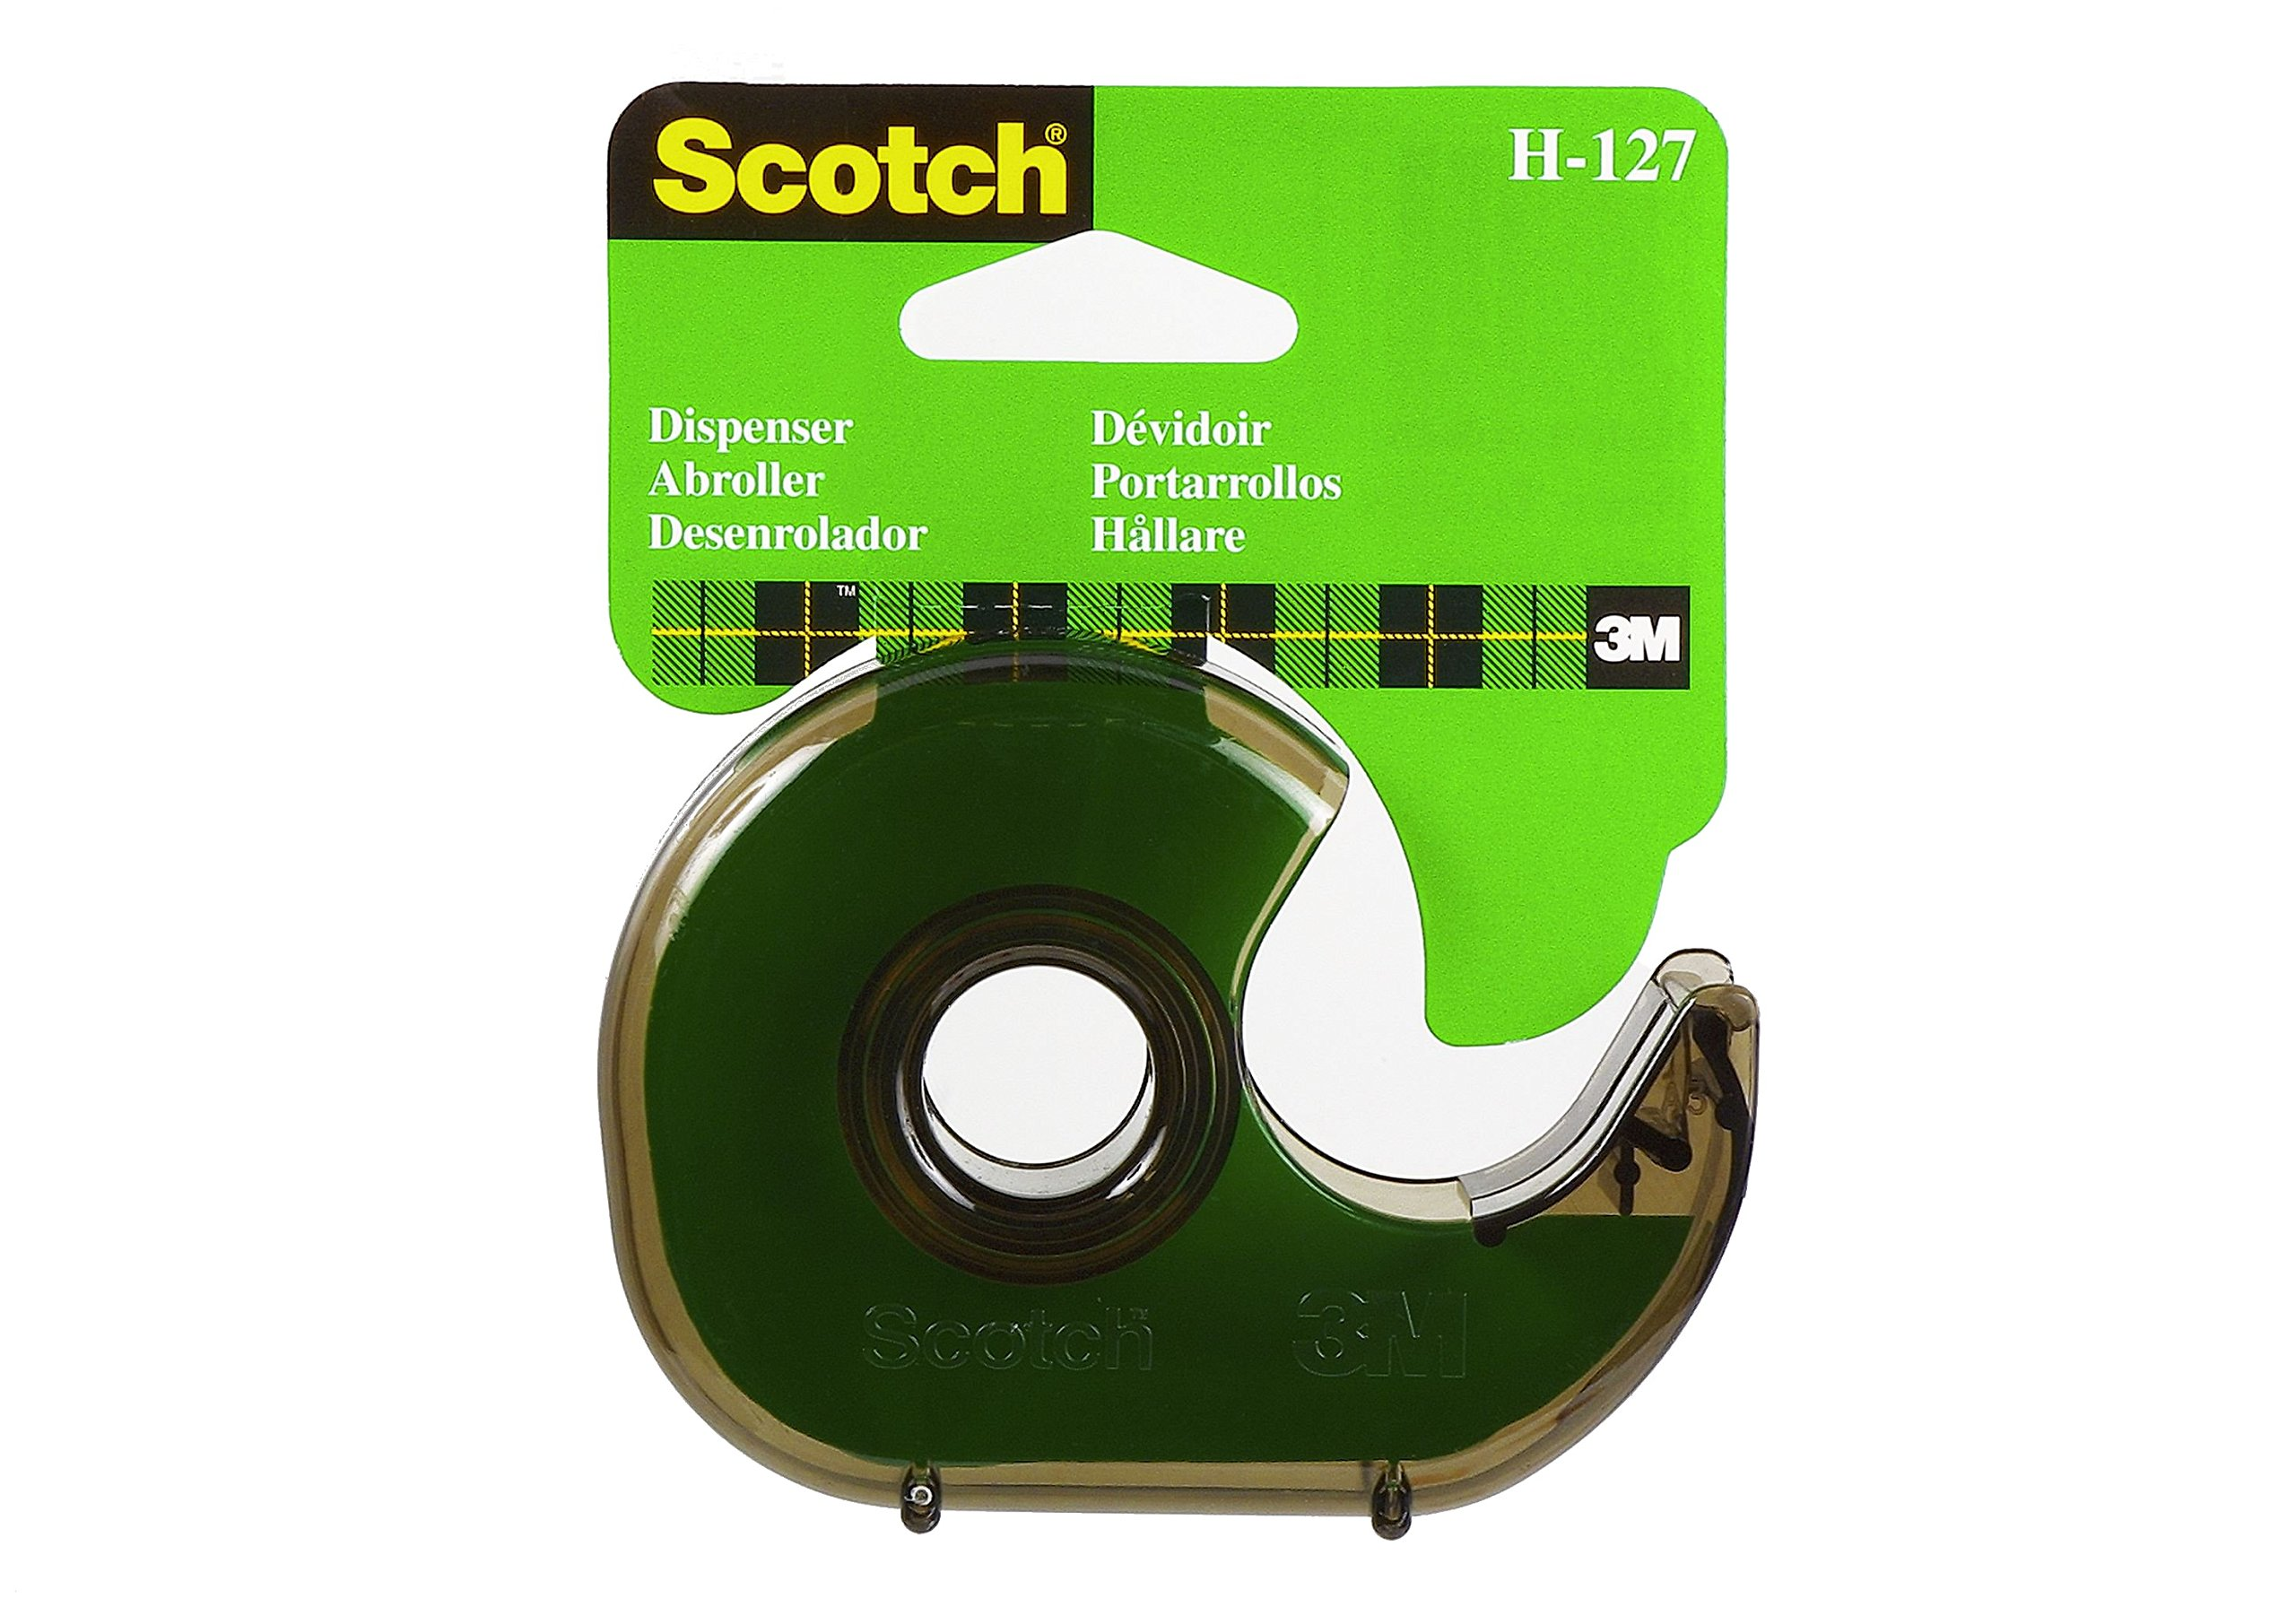 Scotch Hand Tape Dispenser H-127 (Color & Packaging may vary)